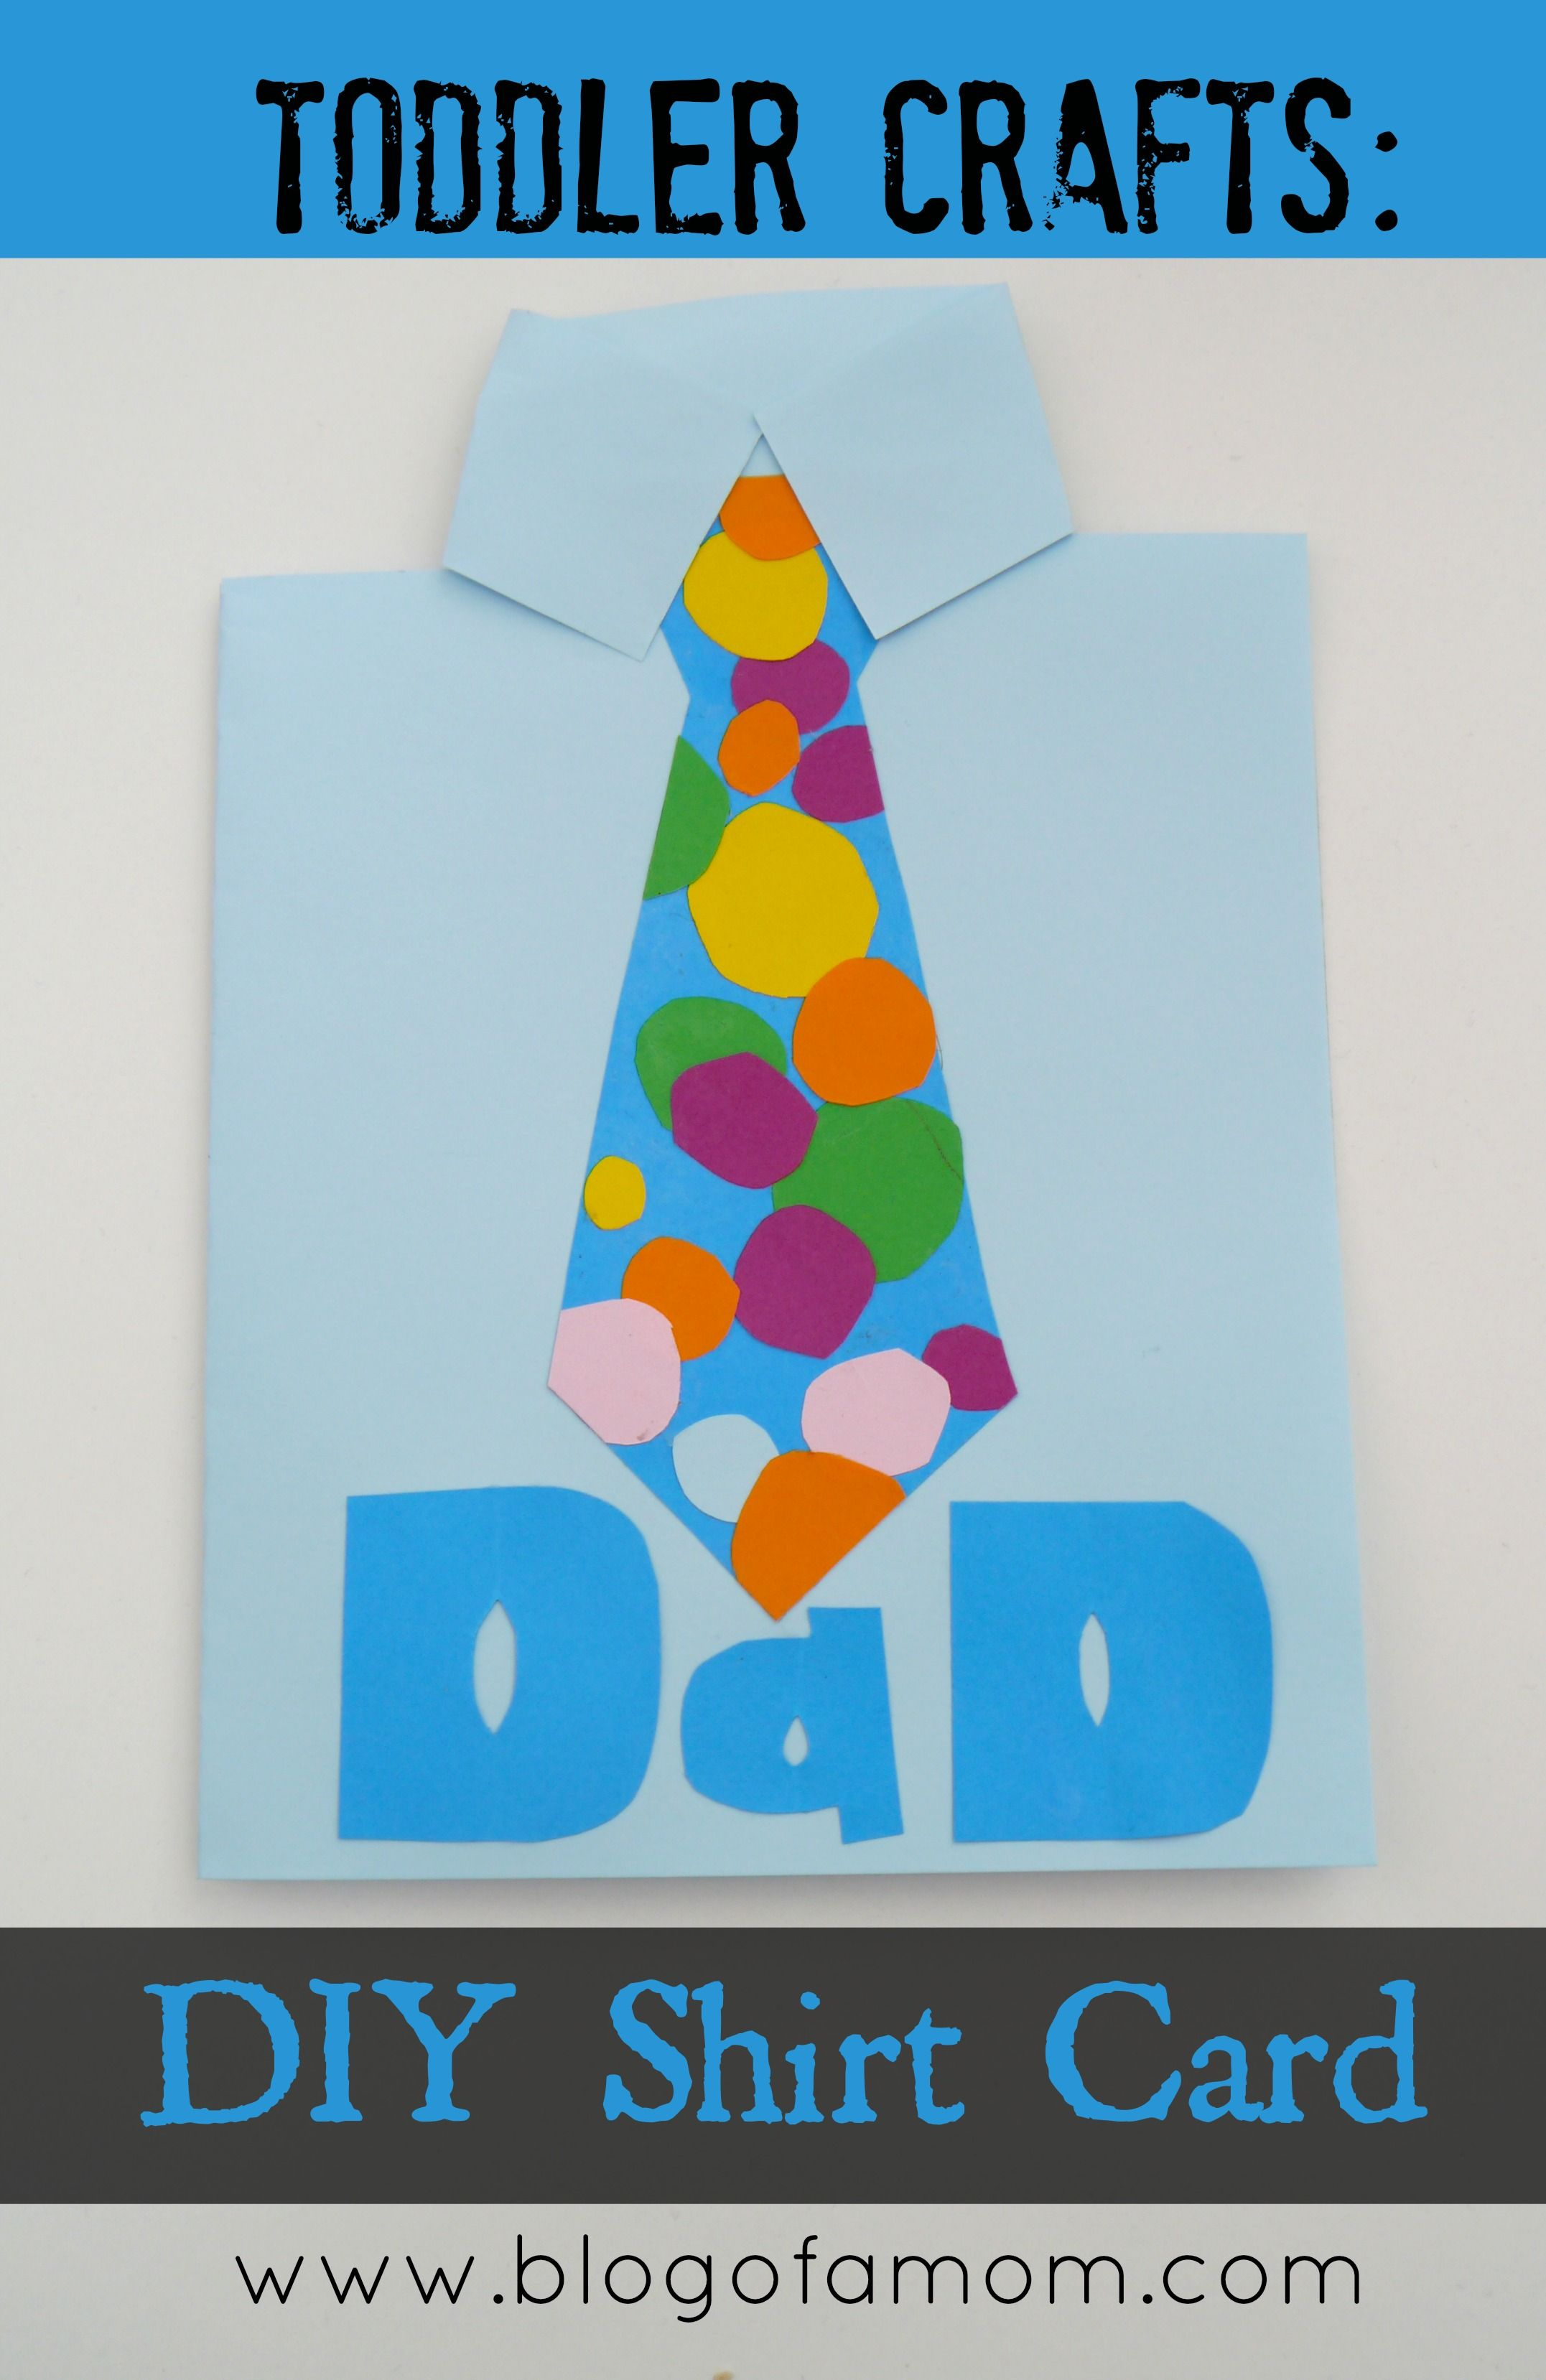 Diy Shirt And Tie Card For Dad Laurenne Hopkins Homemade Birthday Cards Fathers Day Crafts Dad Cards